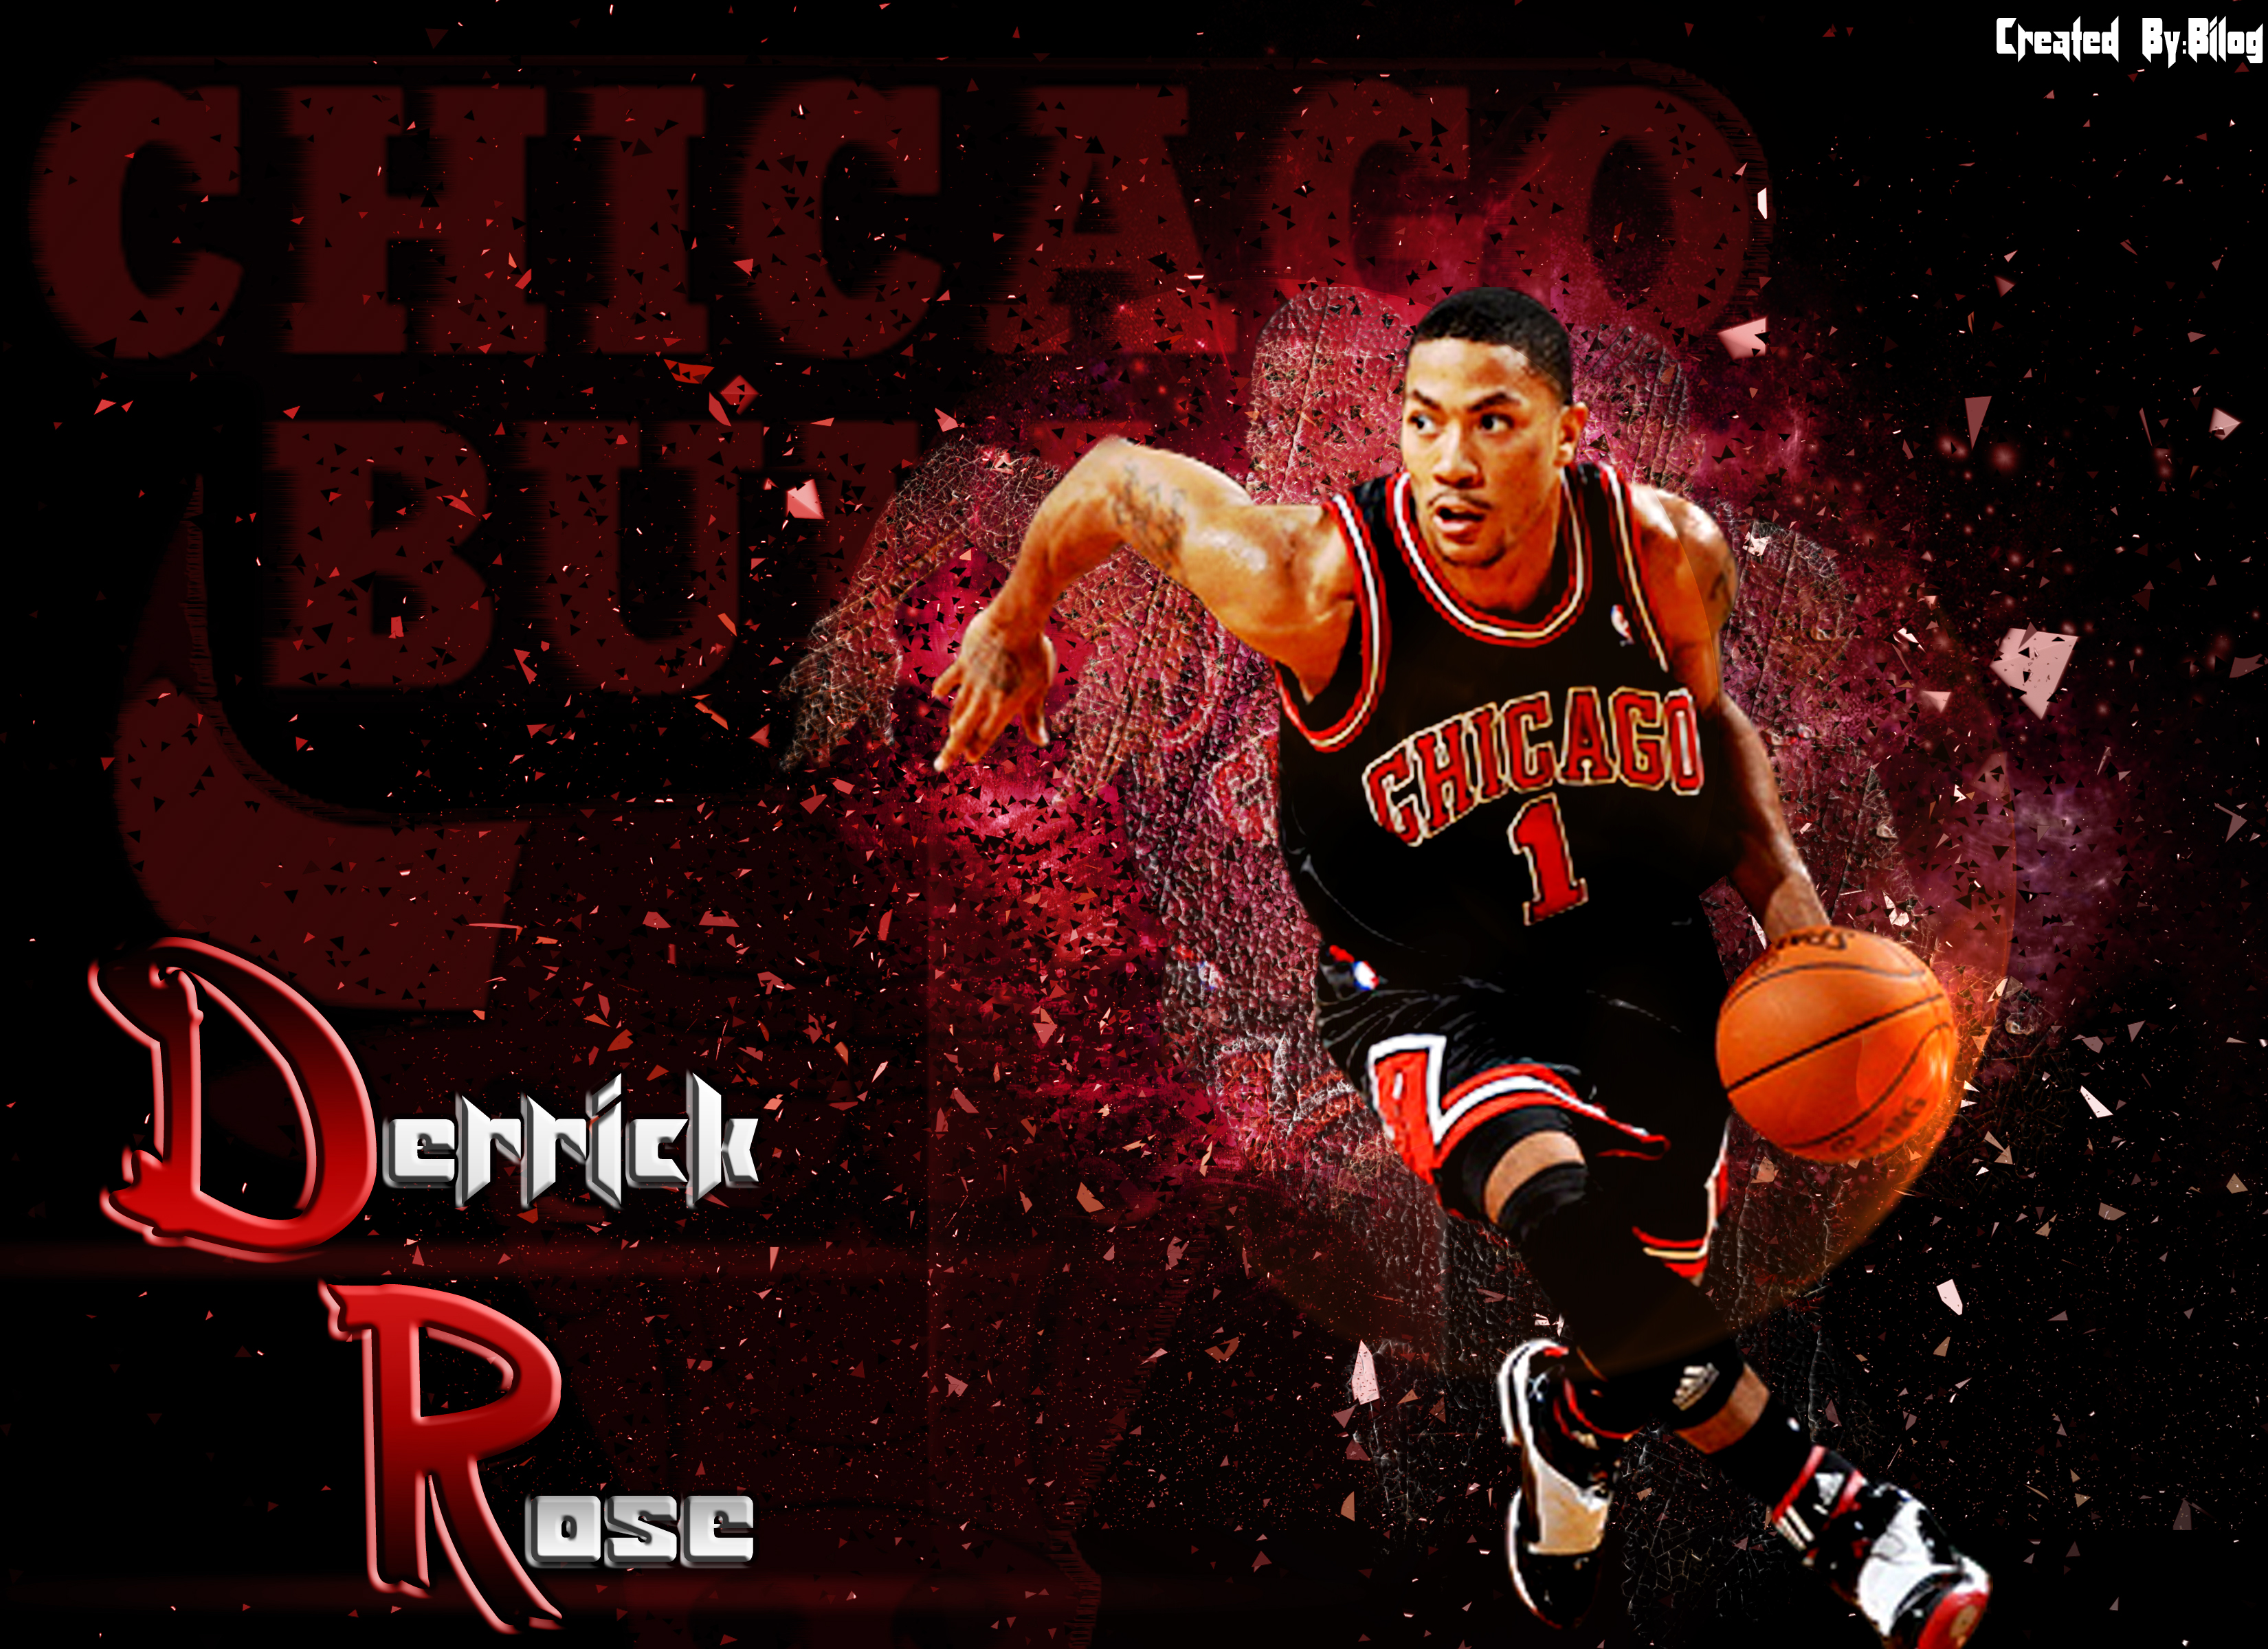 Derrick Rose Wallpapers HD 3300x2400